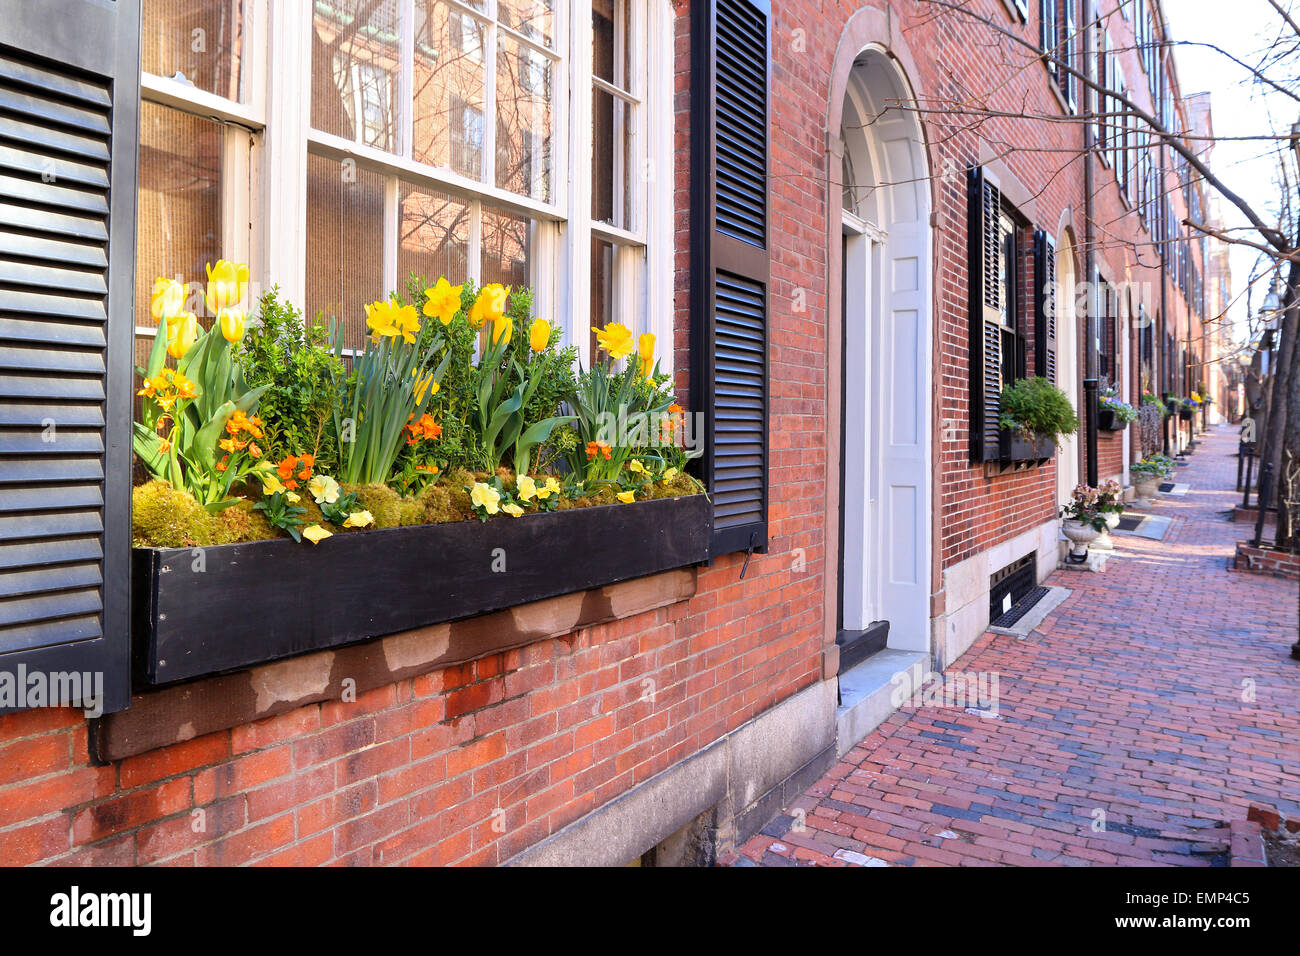 Boston Massachusetts Beacon Hill marciapiede in mattoni con sportello anteriore e fiori in vetro. Immagini Stock